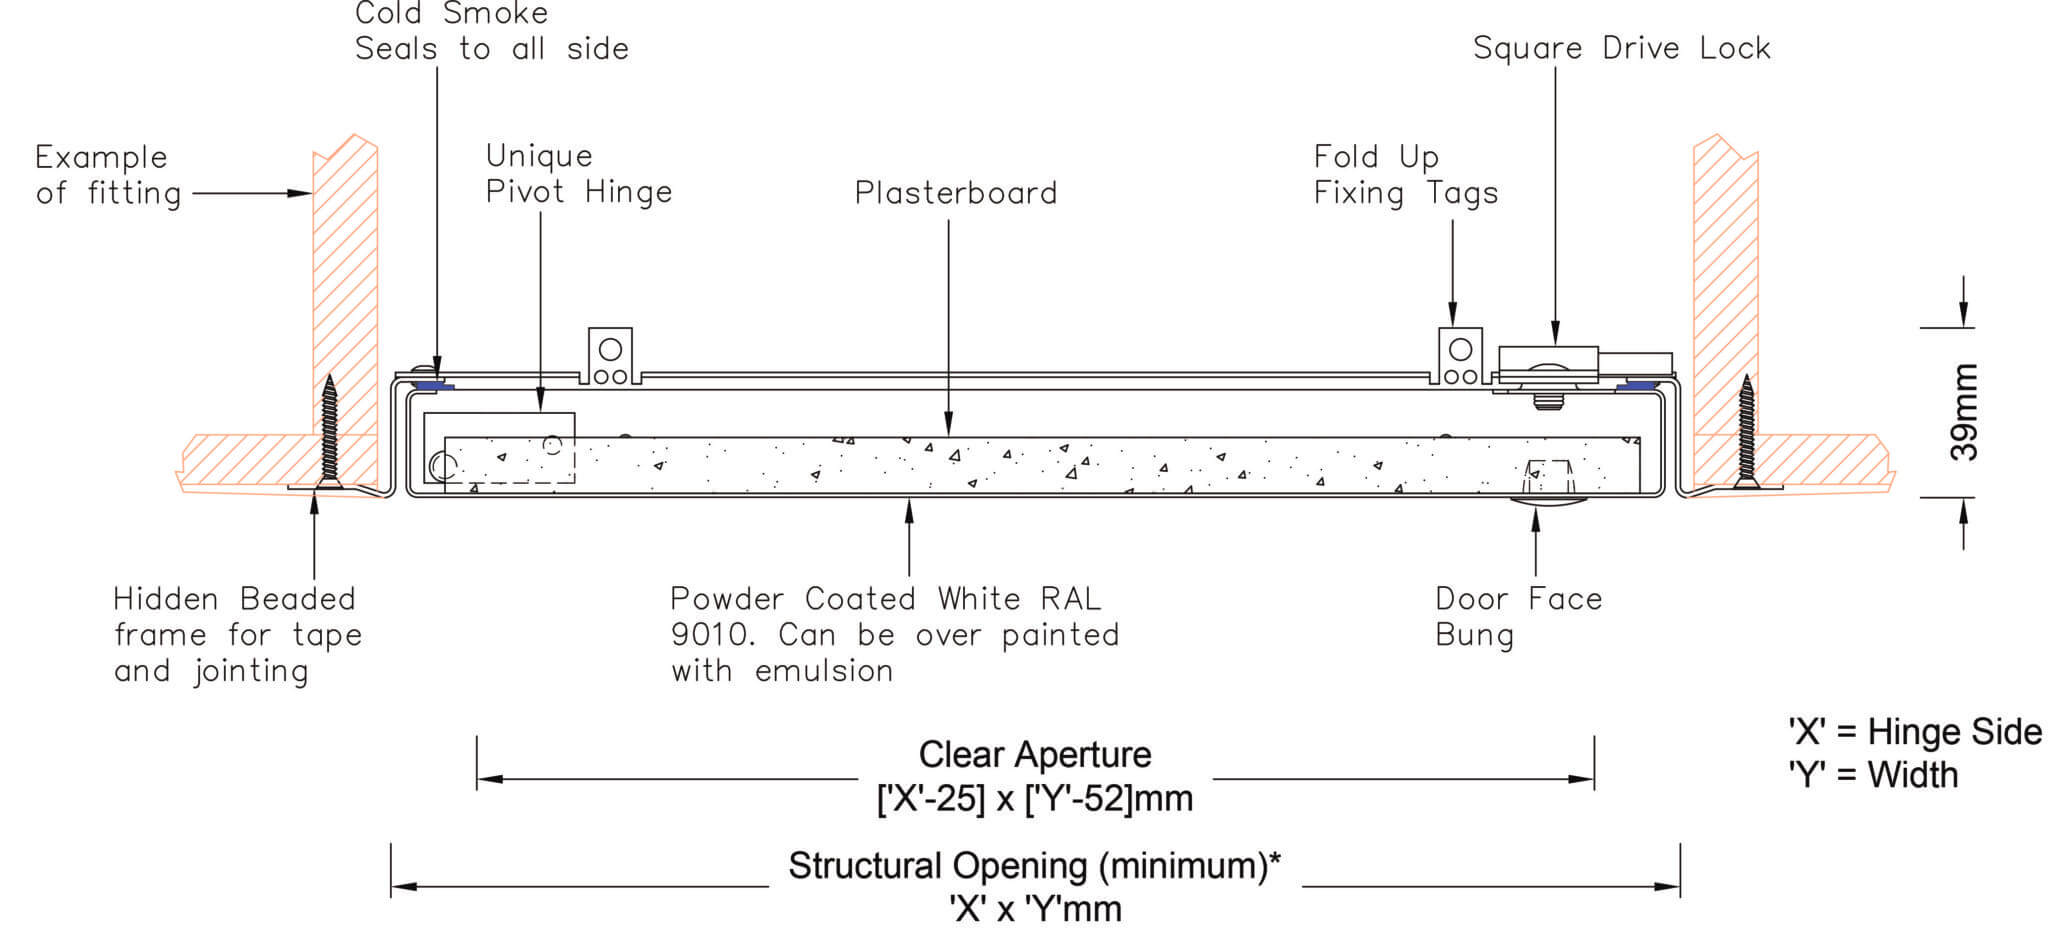 Gas-Flue-Access-Panel drawing